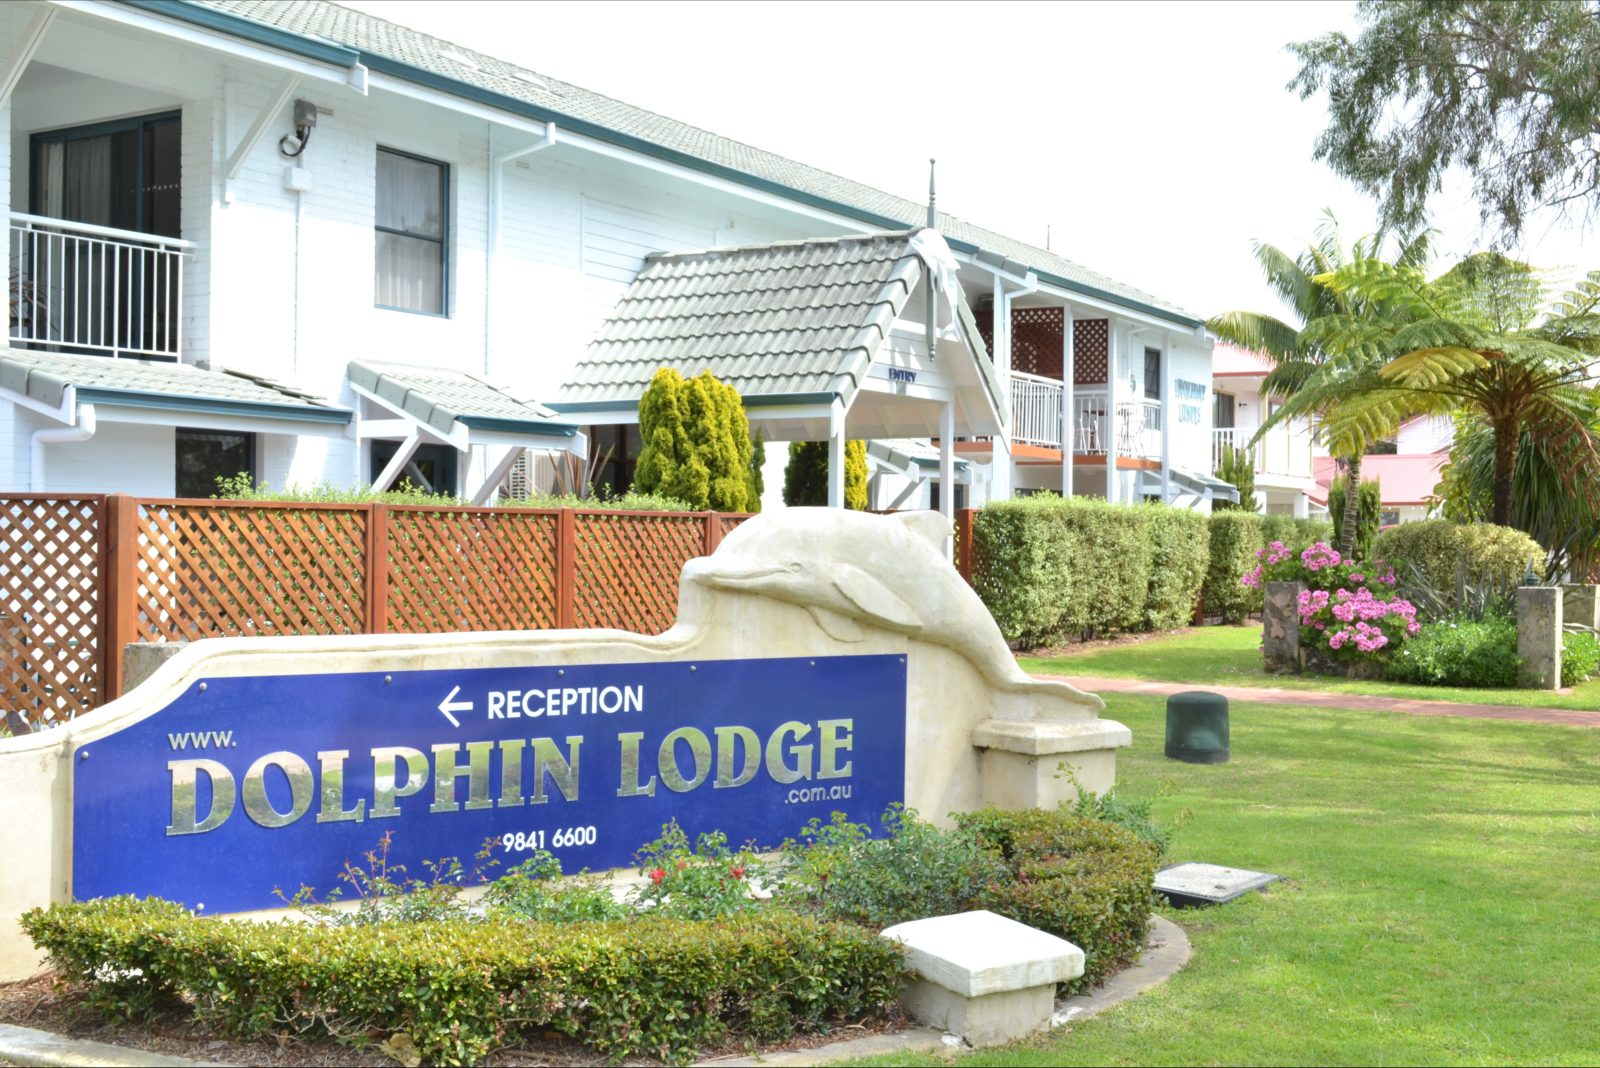 Dolphin Lodge Accommodation Middleton Beach Western